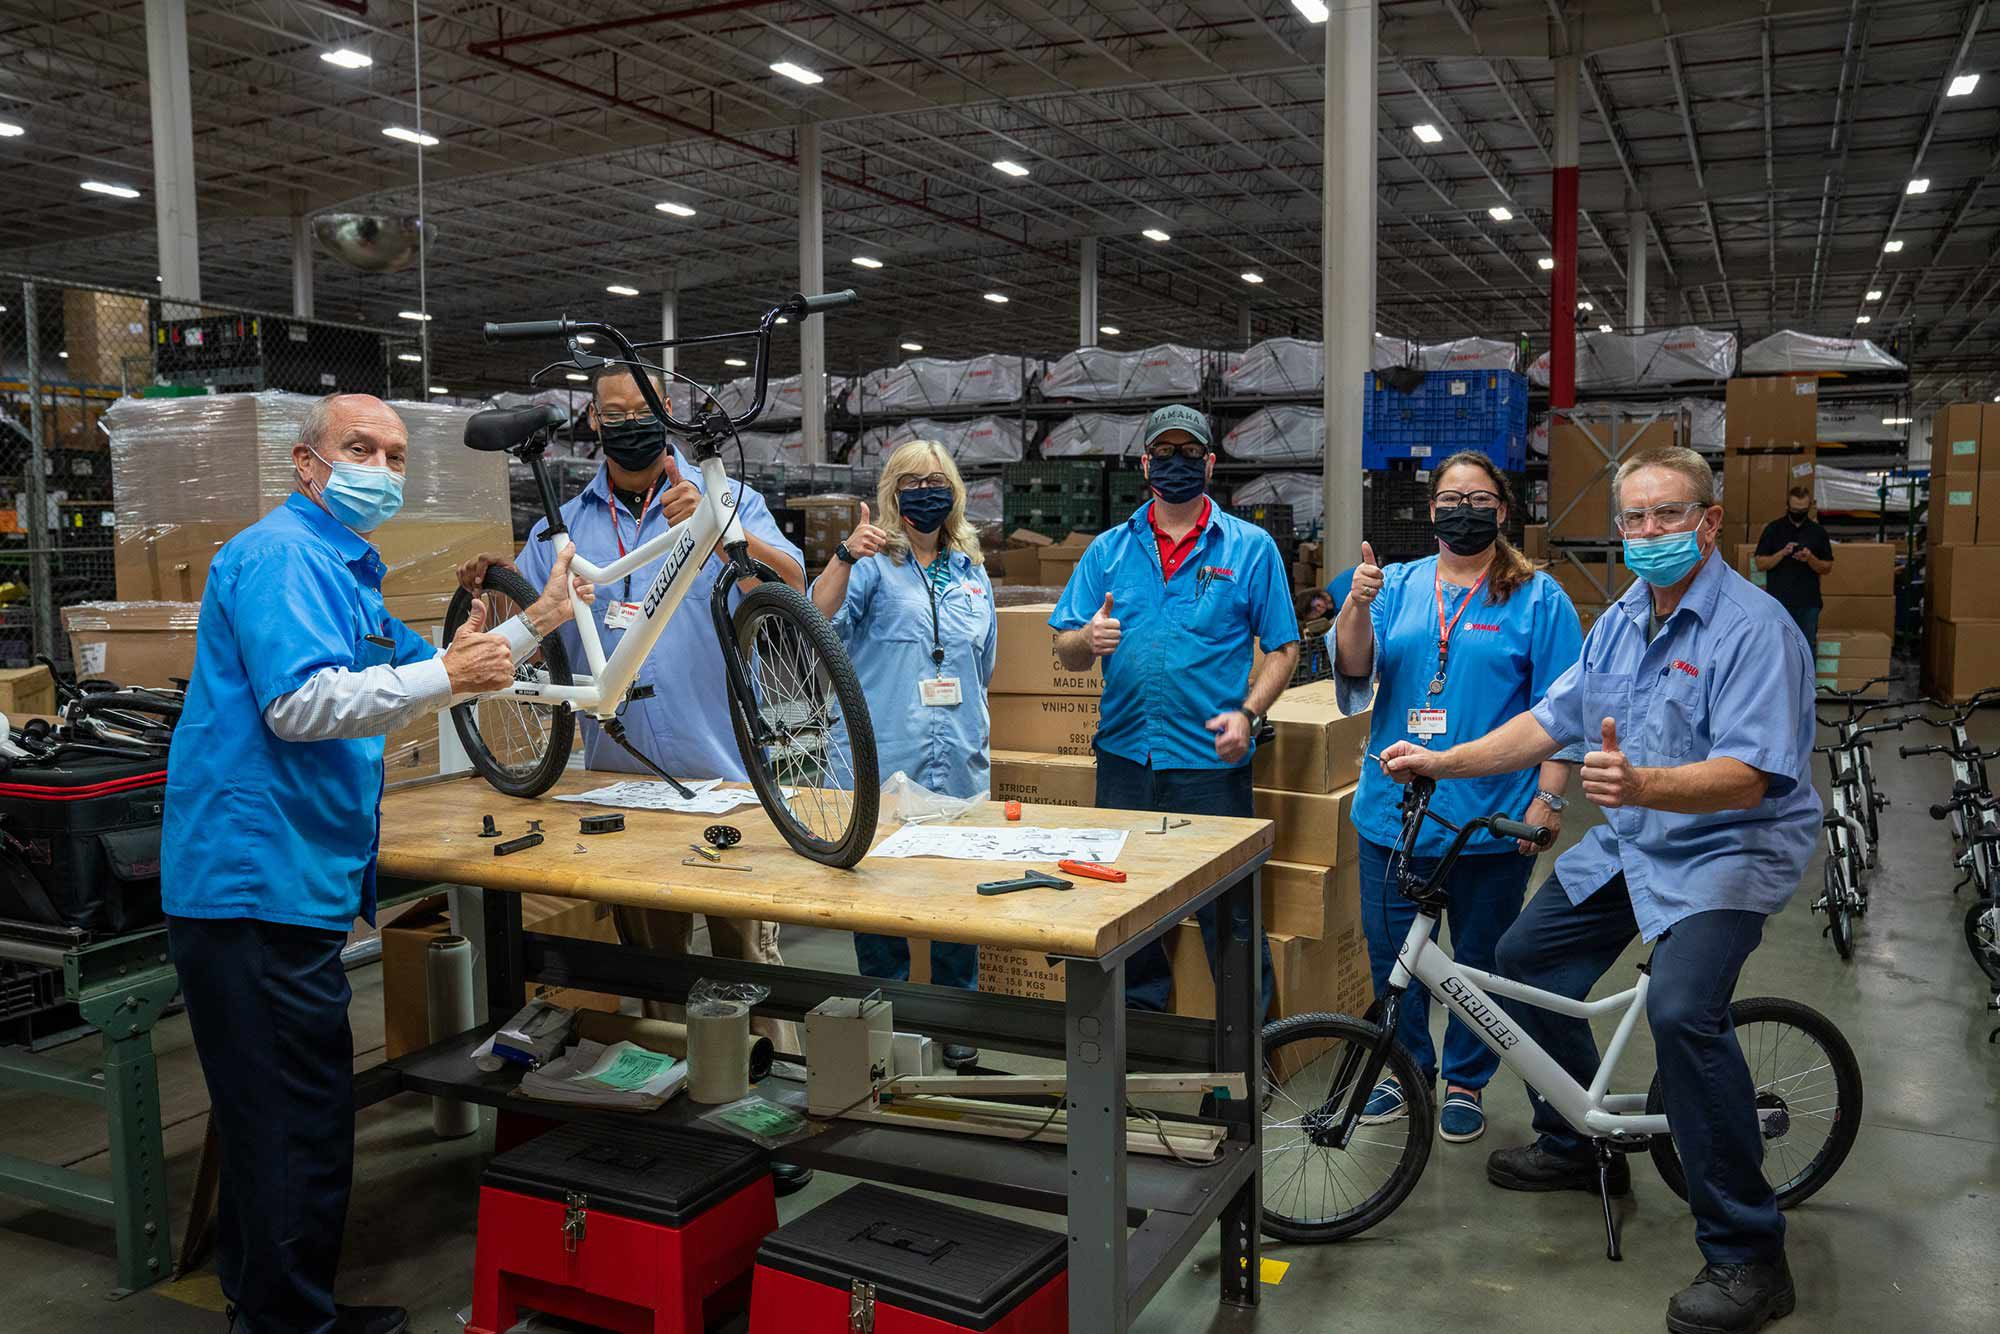 Yamaha employees donate their time to assemble and deliver bicycles to schools that have adopted the All Kids Bike program.